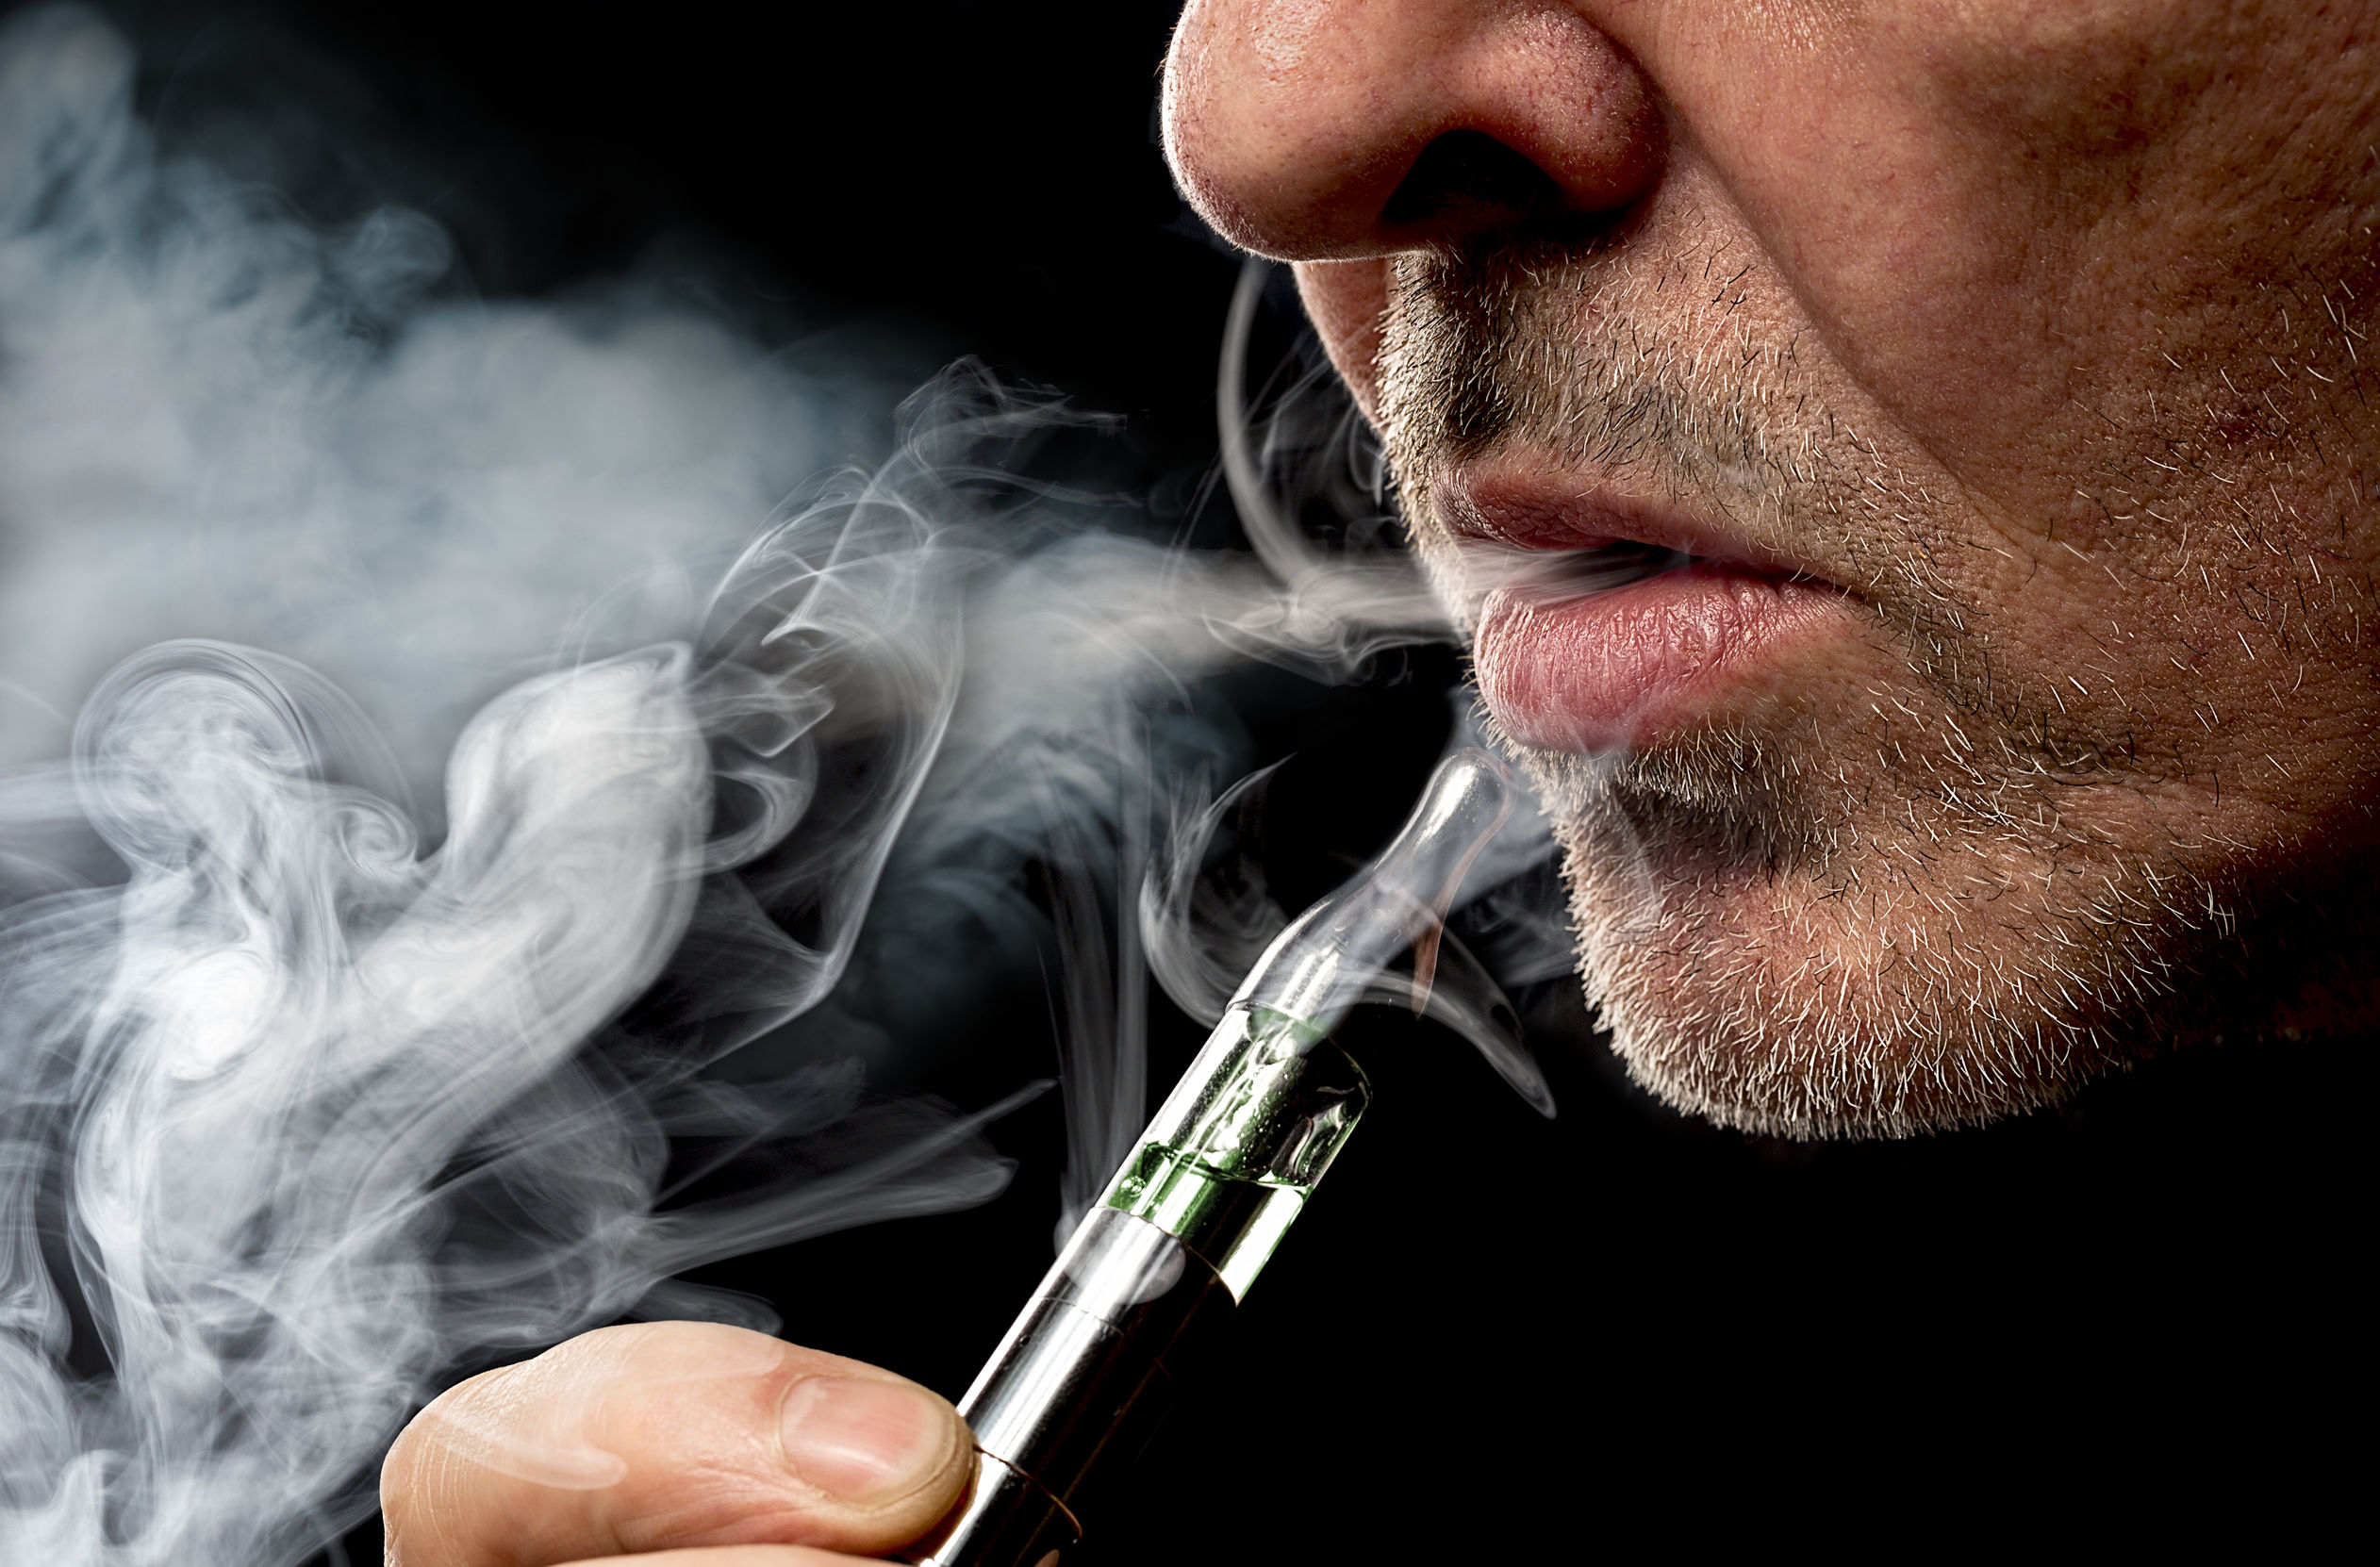 Should e-cigarettes be legalised? The numbers are in from the UK and they're staggering